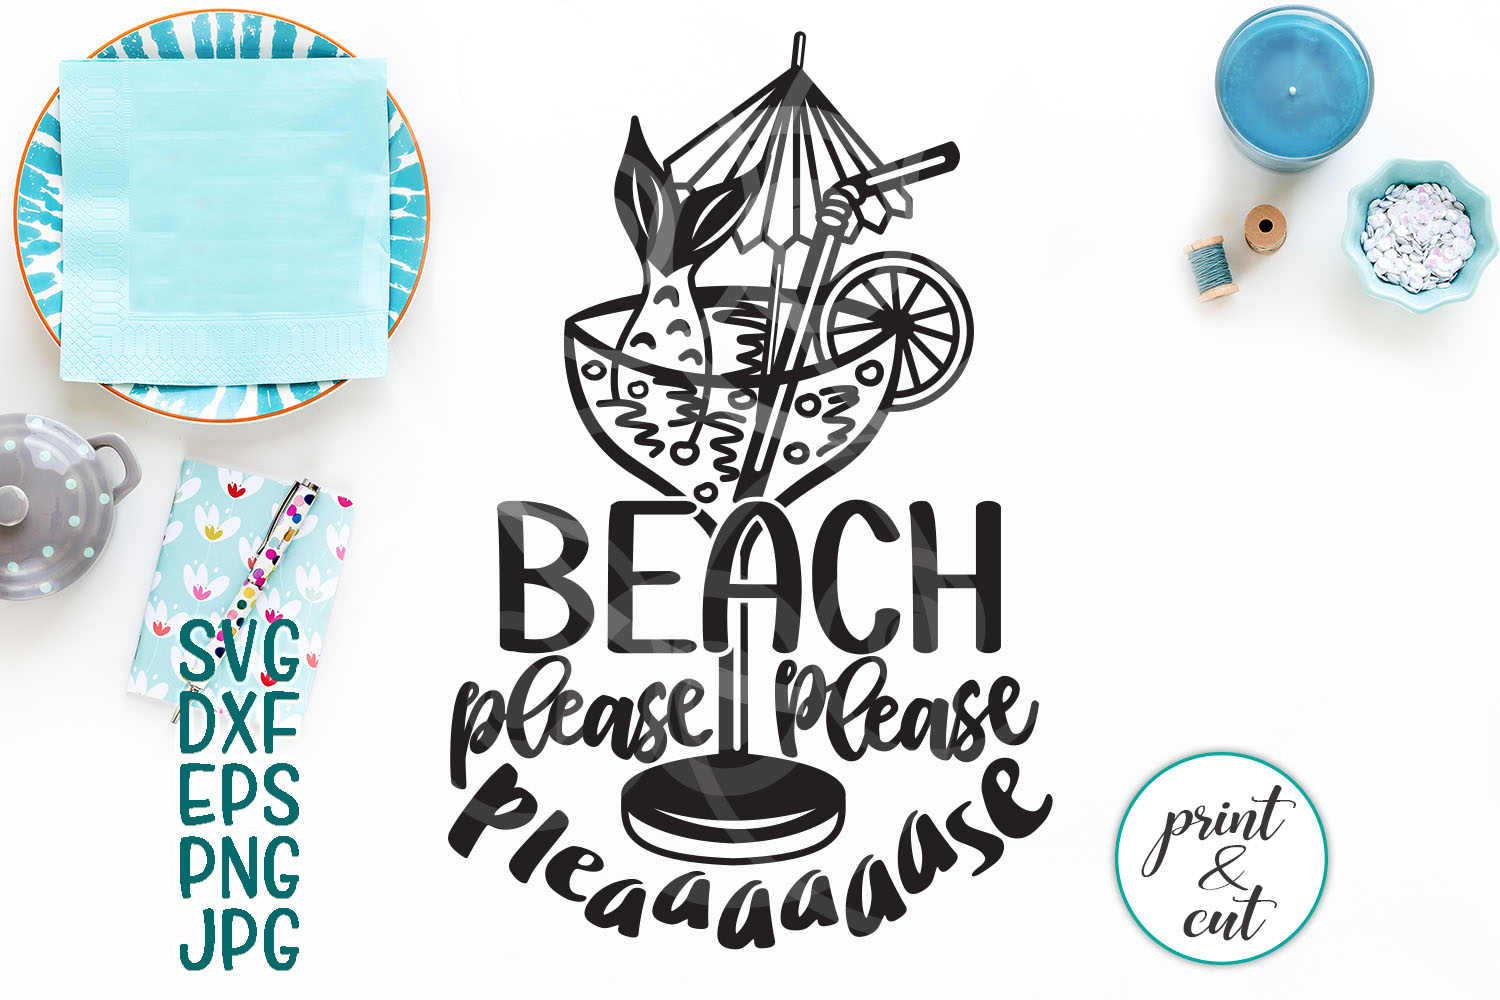 Download Free Beach Please Funny Beach Cutting File Girls Shirt Design for Cricut Explore, Silhouette and other cutting machines.